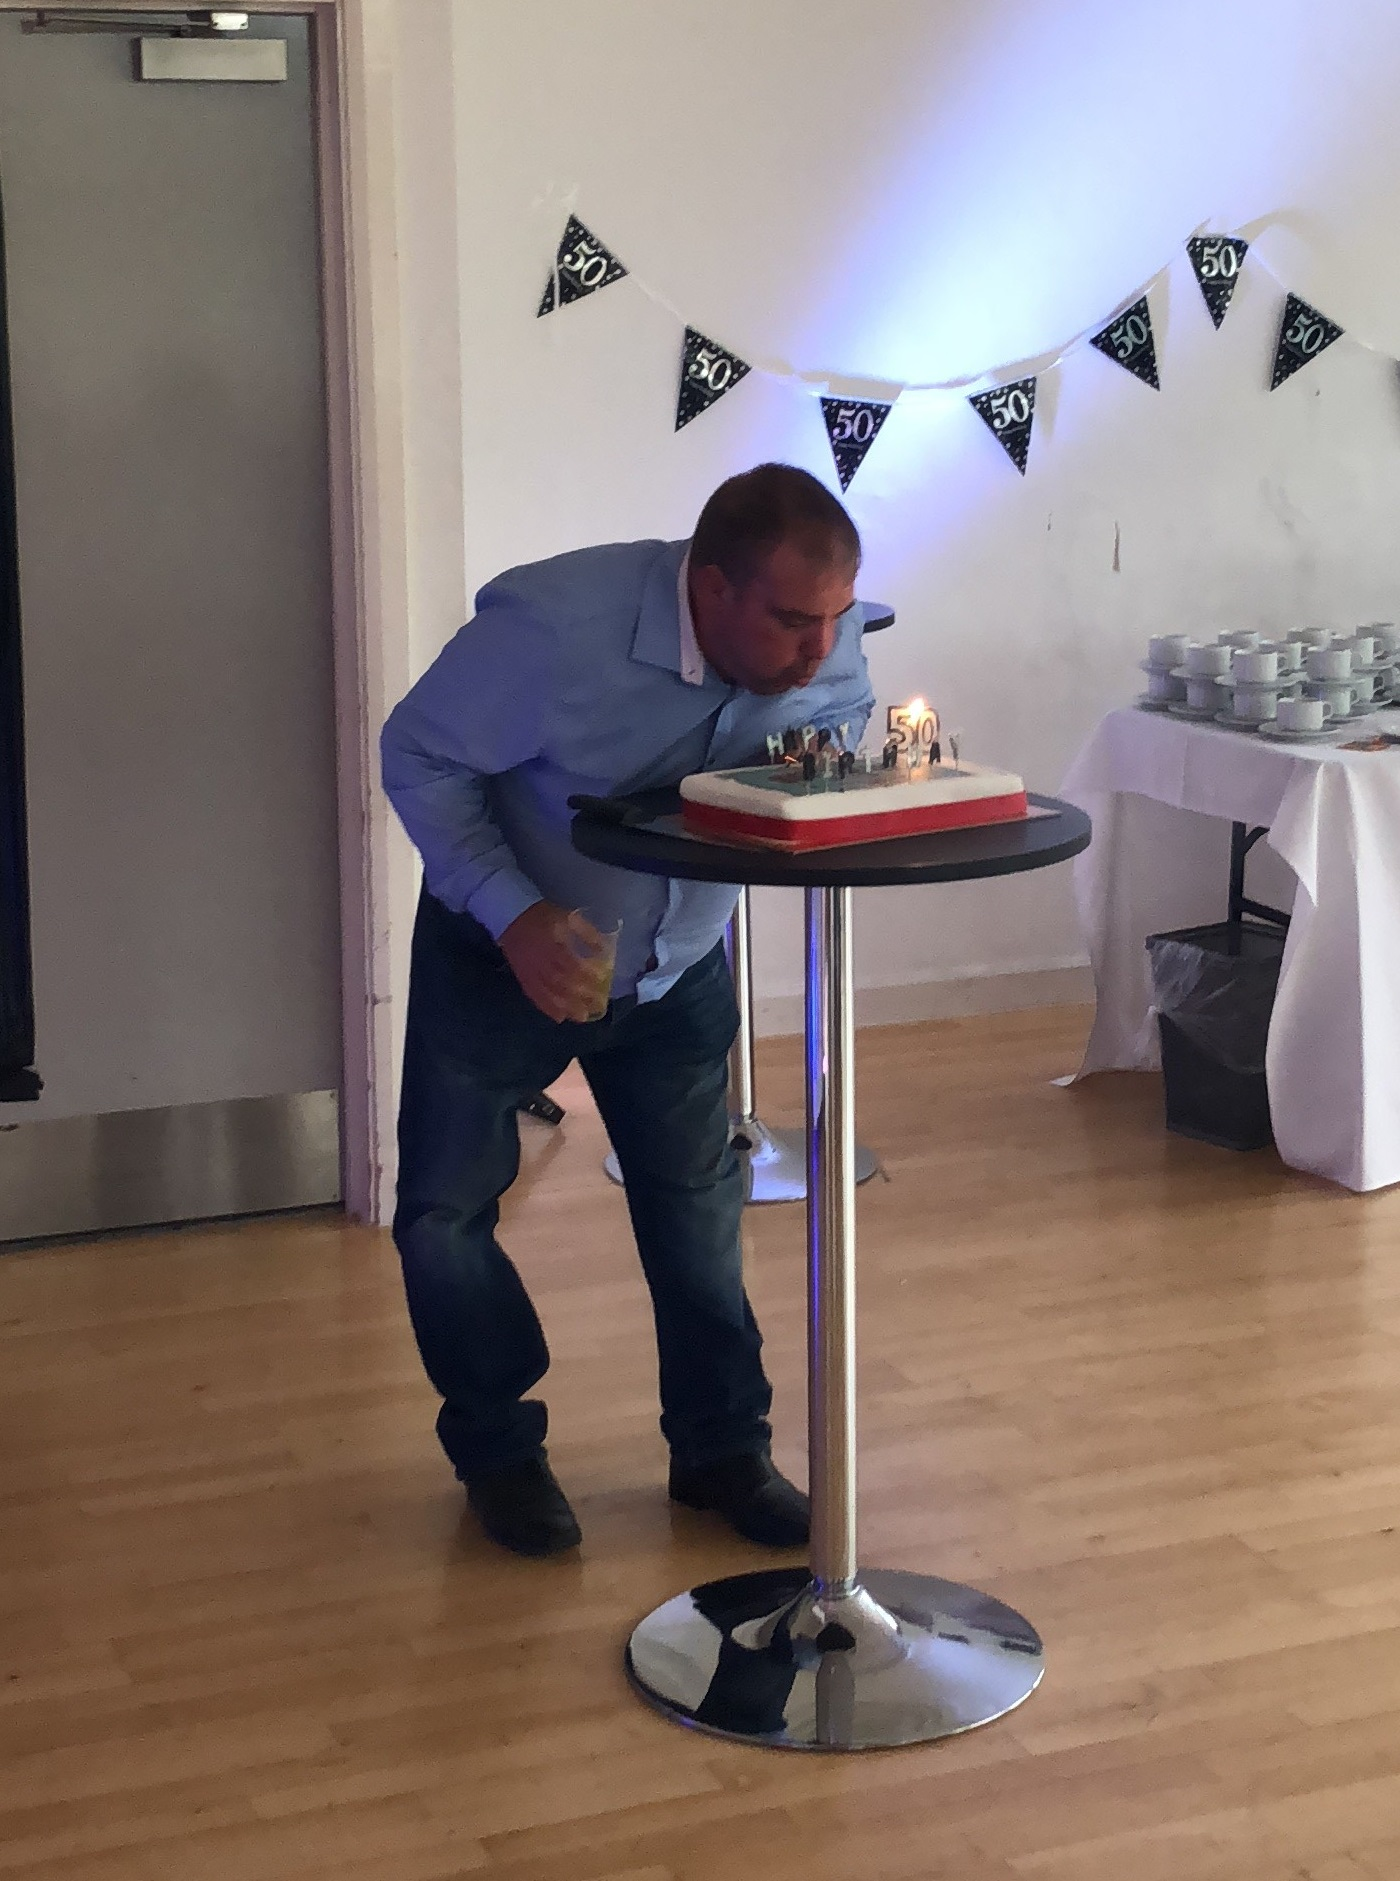 blowing-out-candles-1 Mr R Cleaning Turns 50!